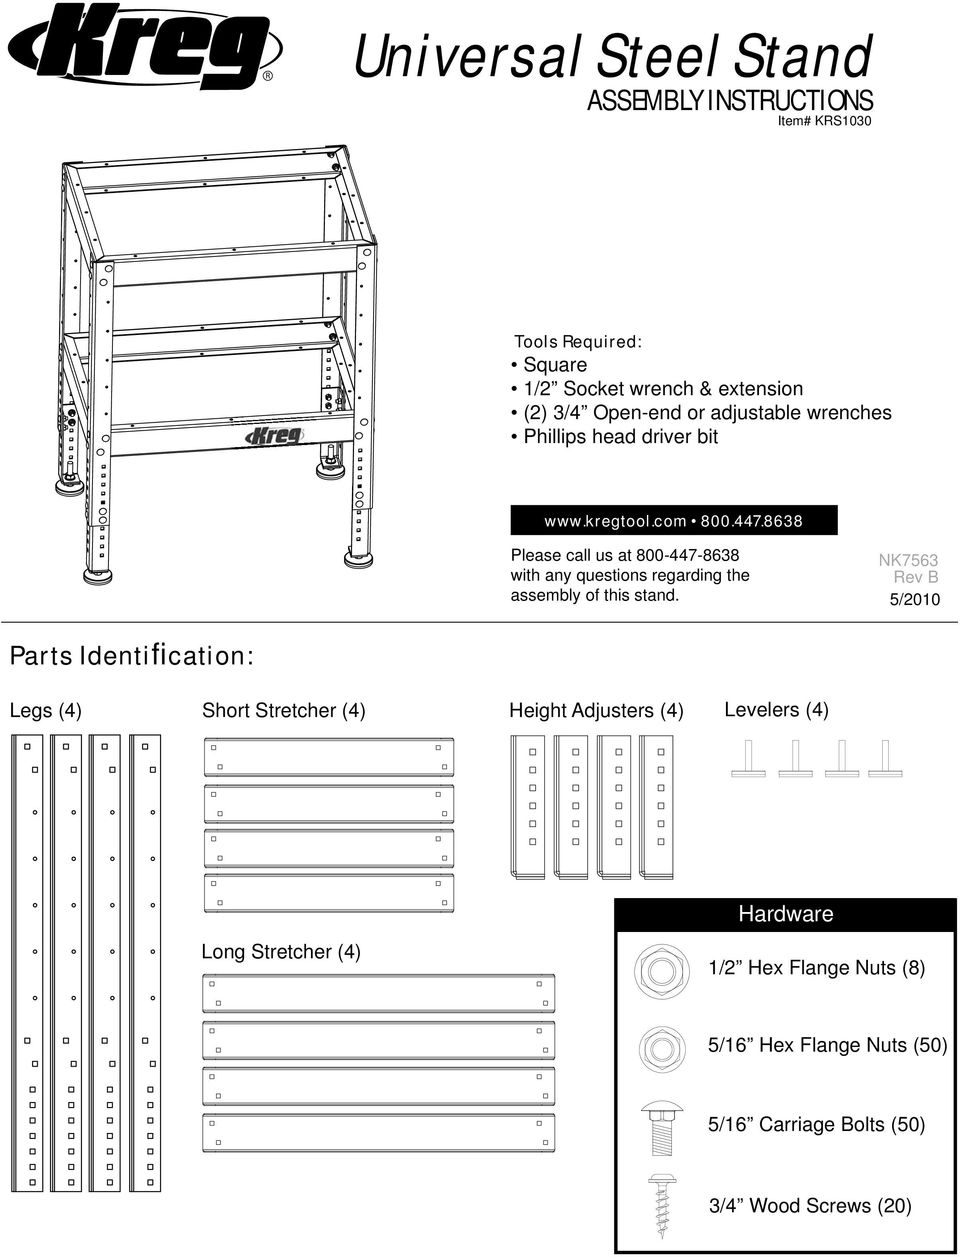 8638 Please call us at 800-447-8638 with any questions regarding the assembly of this stand.